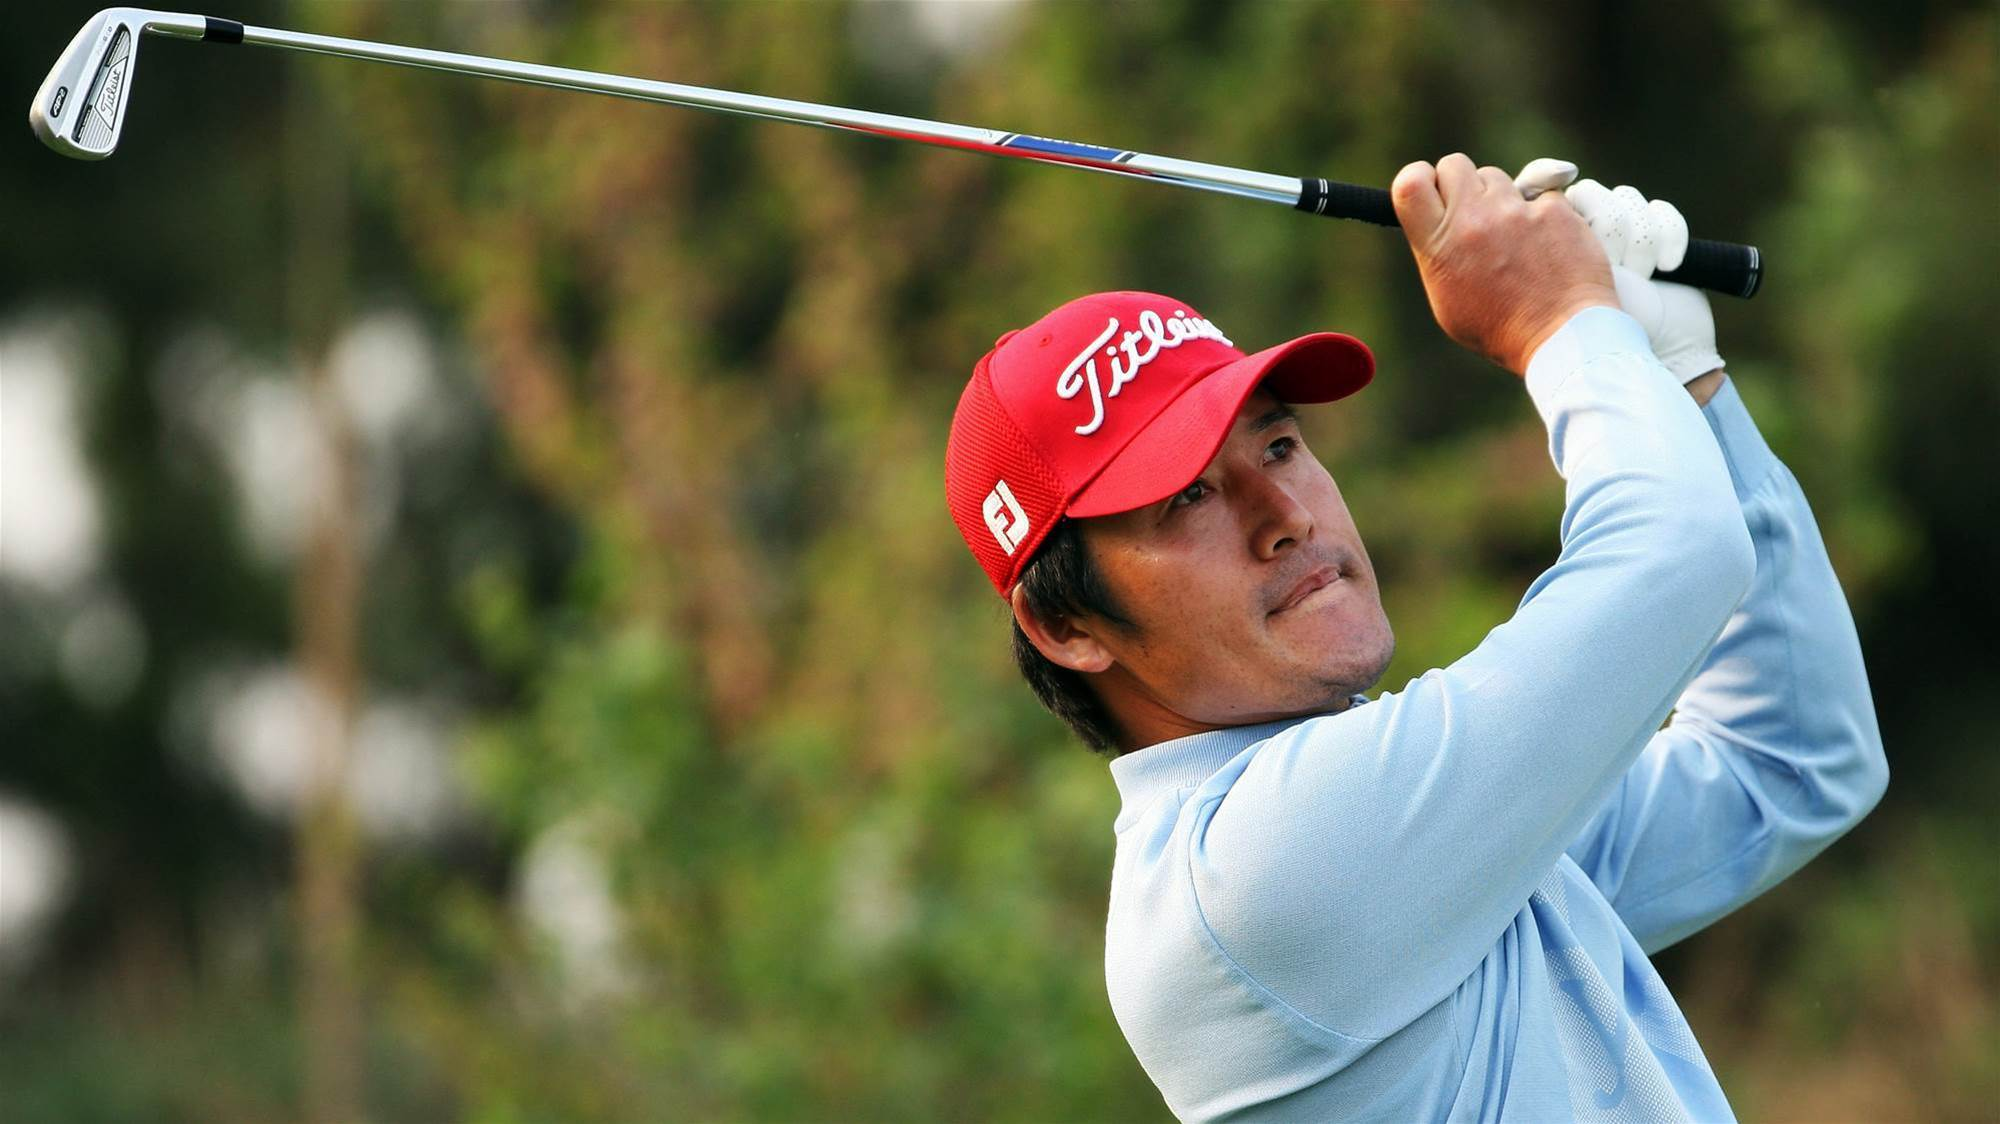 Internet sensation Choi set for PGA Tour debut